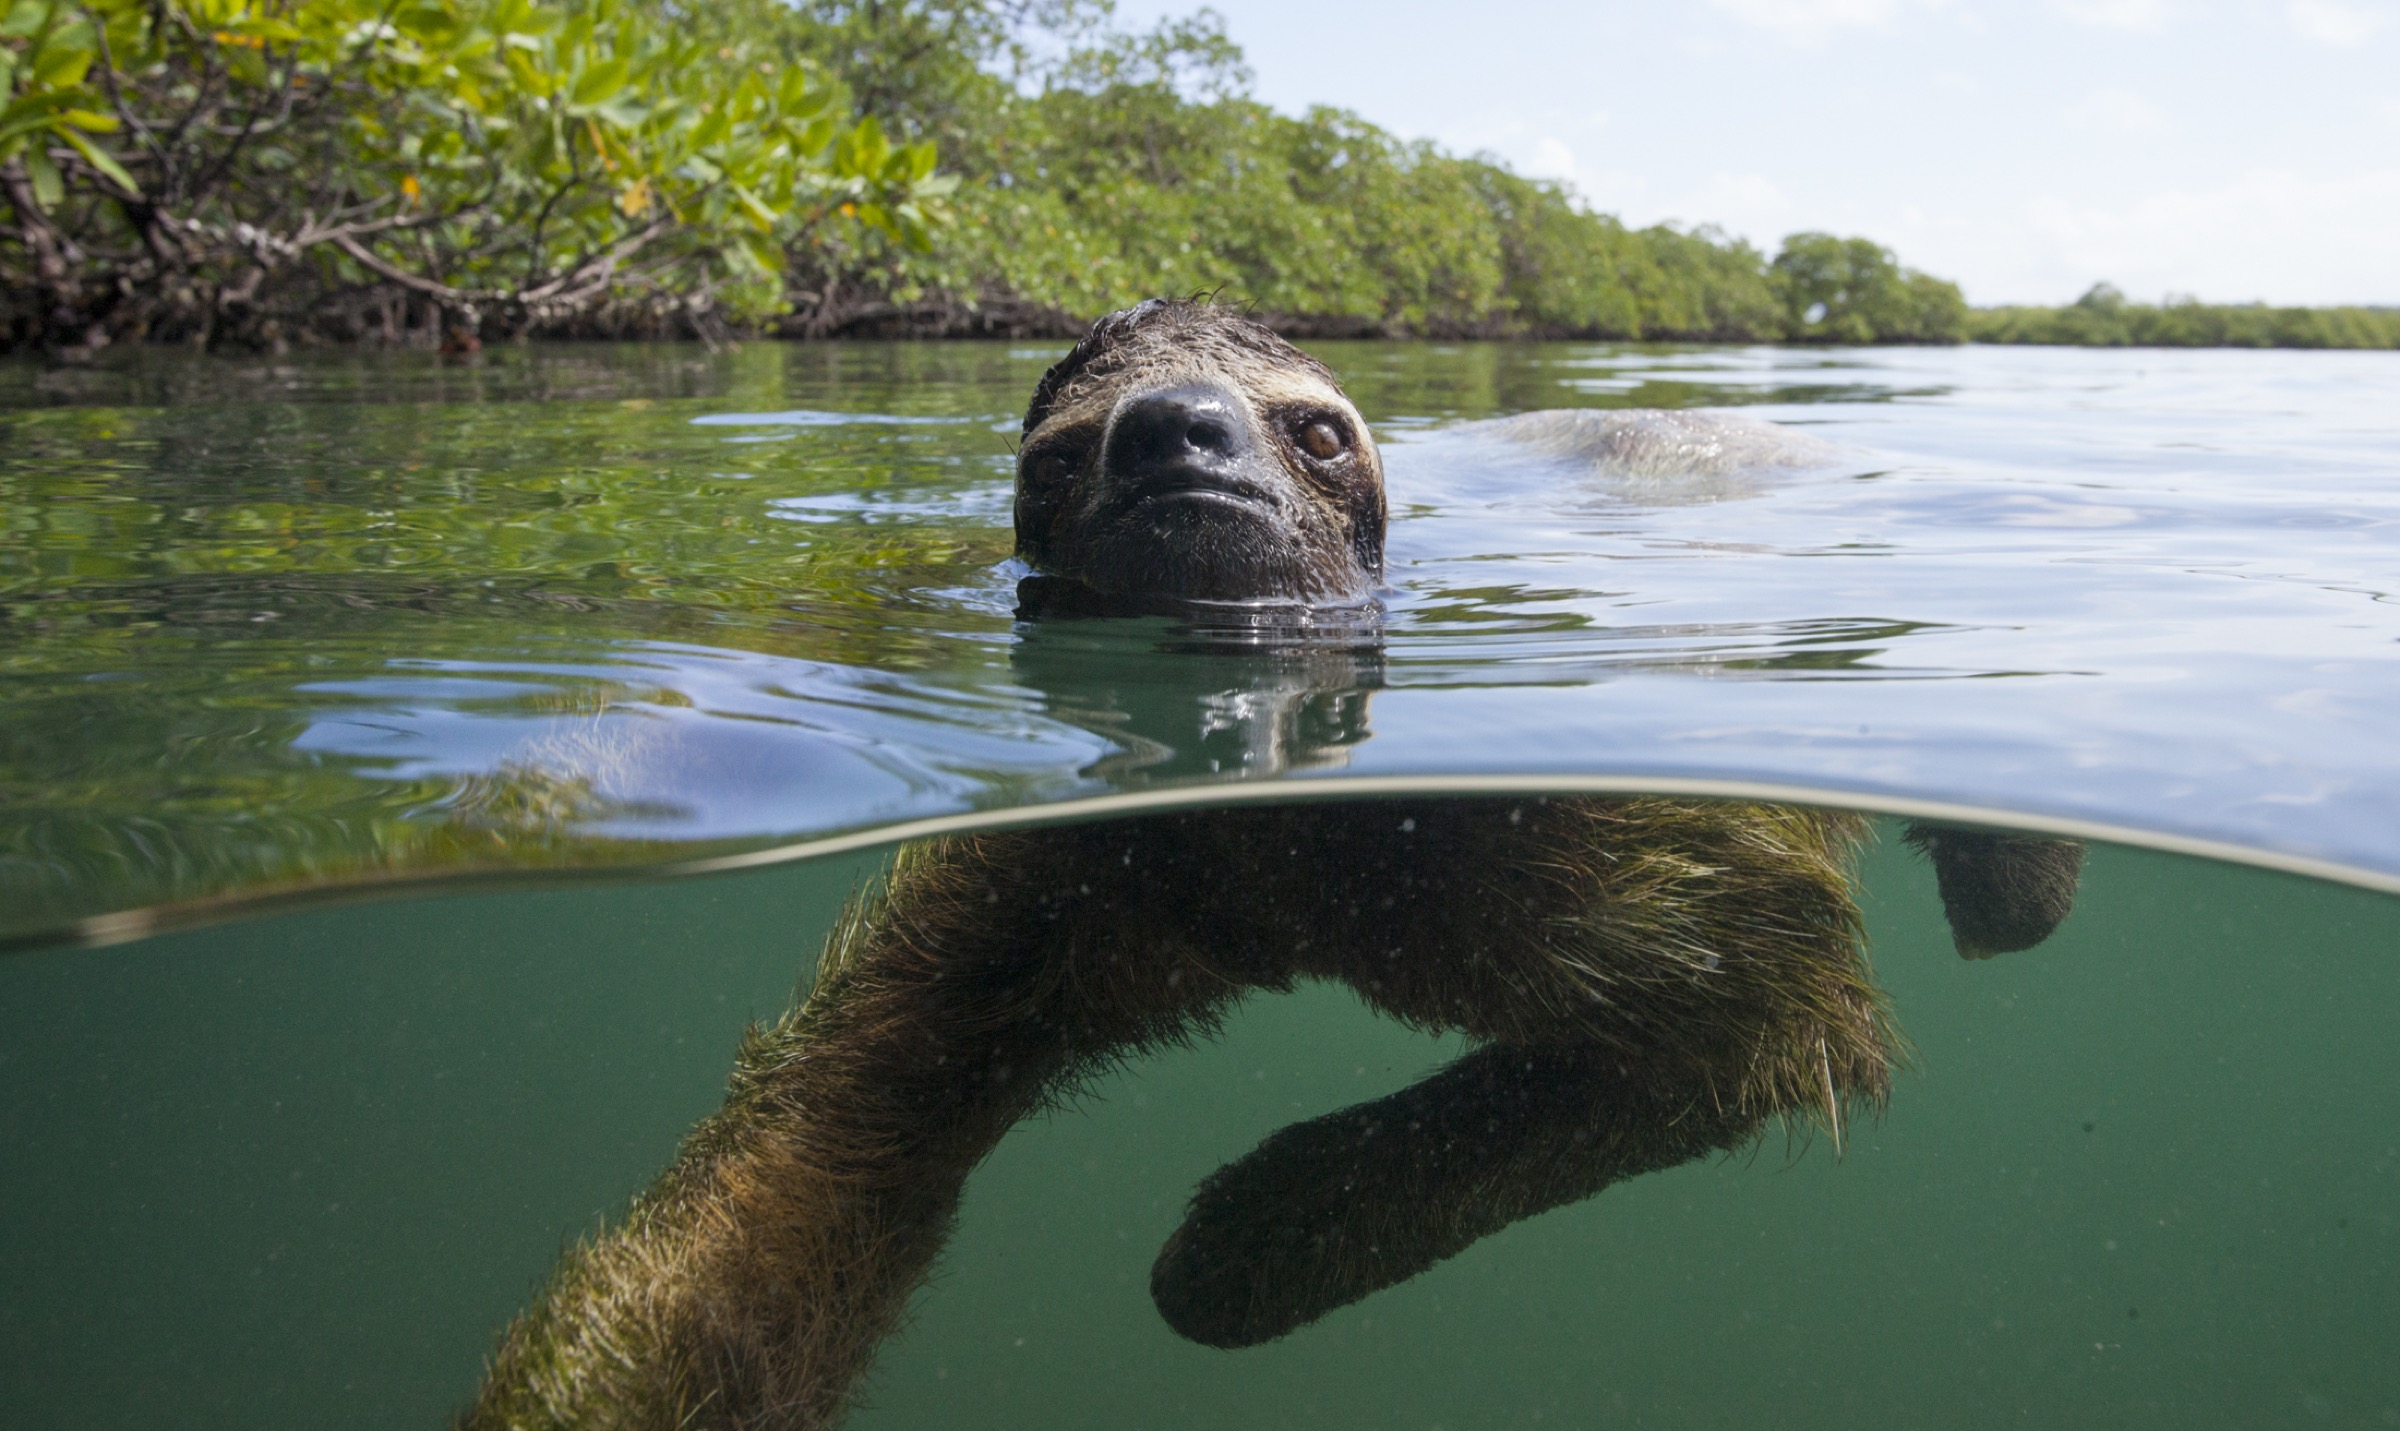 Pygmy three-toed sloths move faster in water than on the ground, which makes swimming the preferred mode of travel.